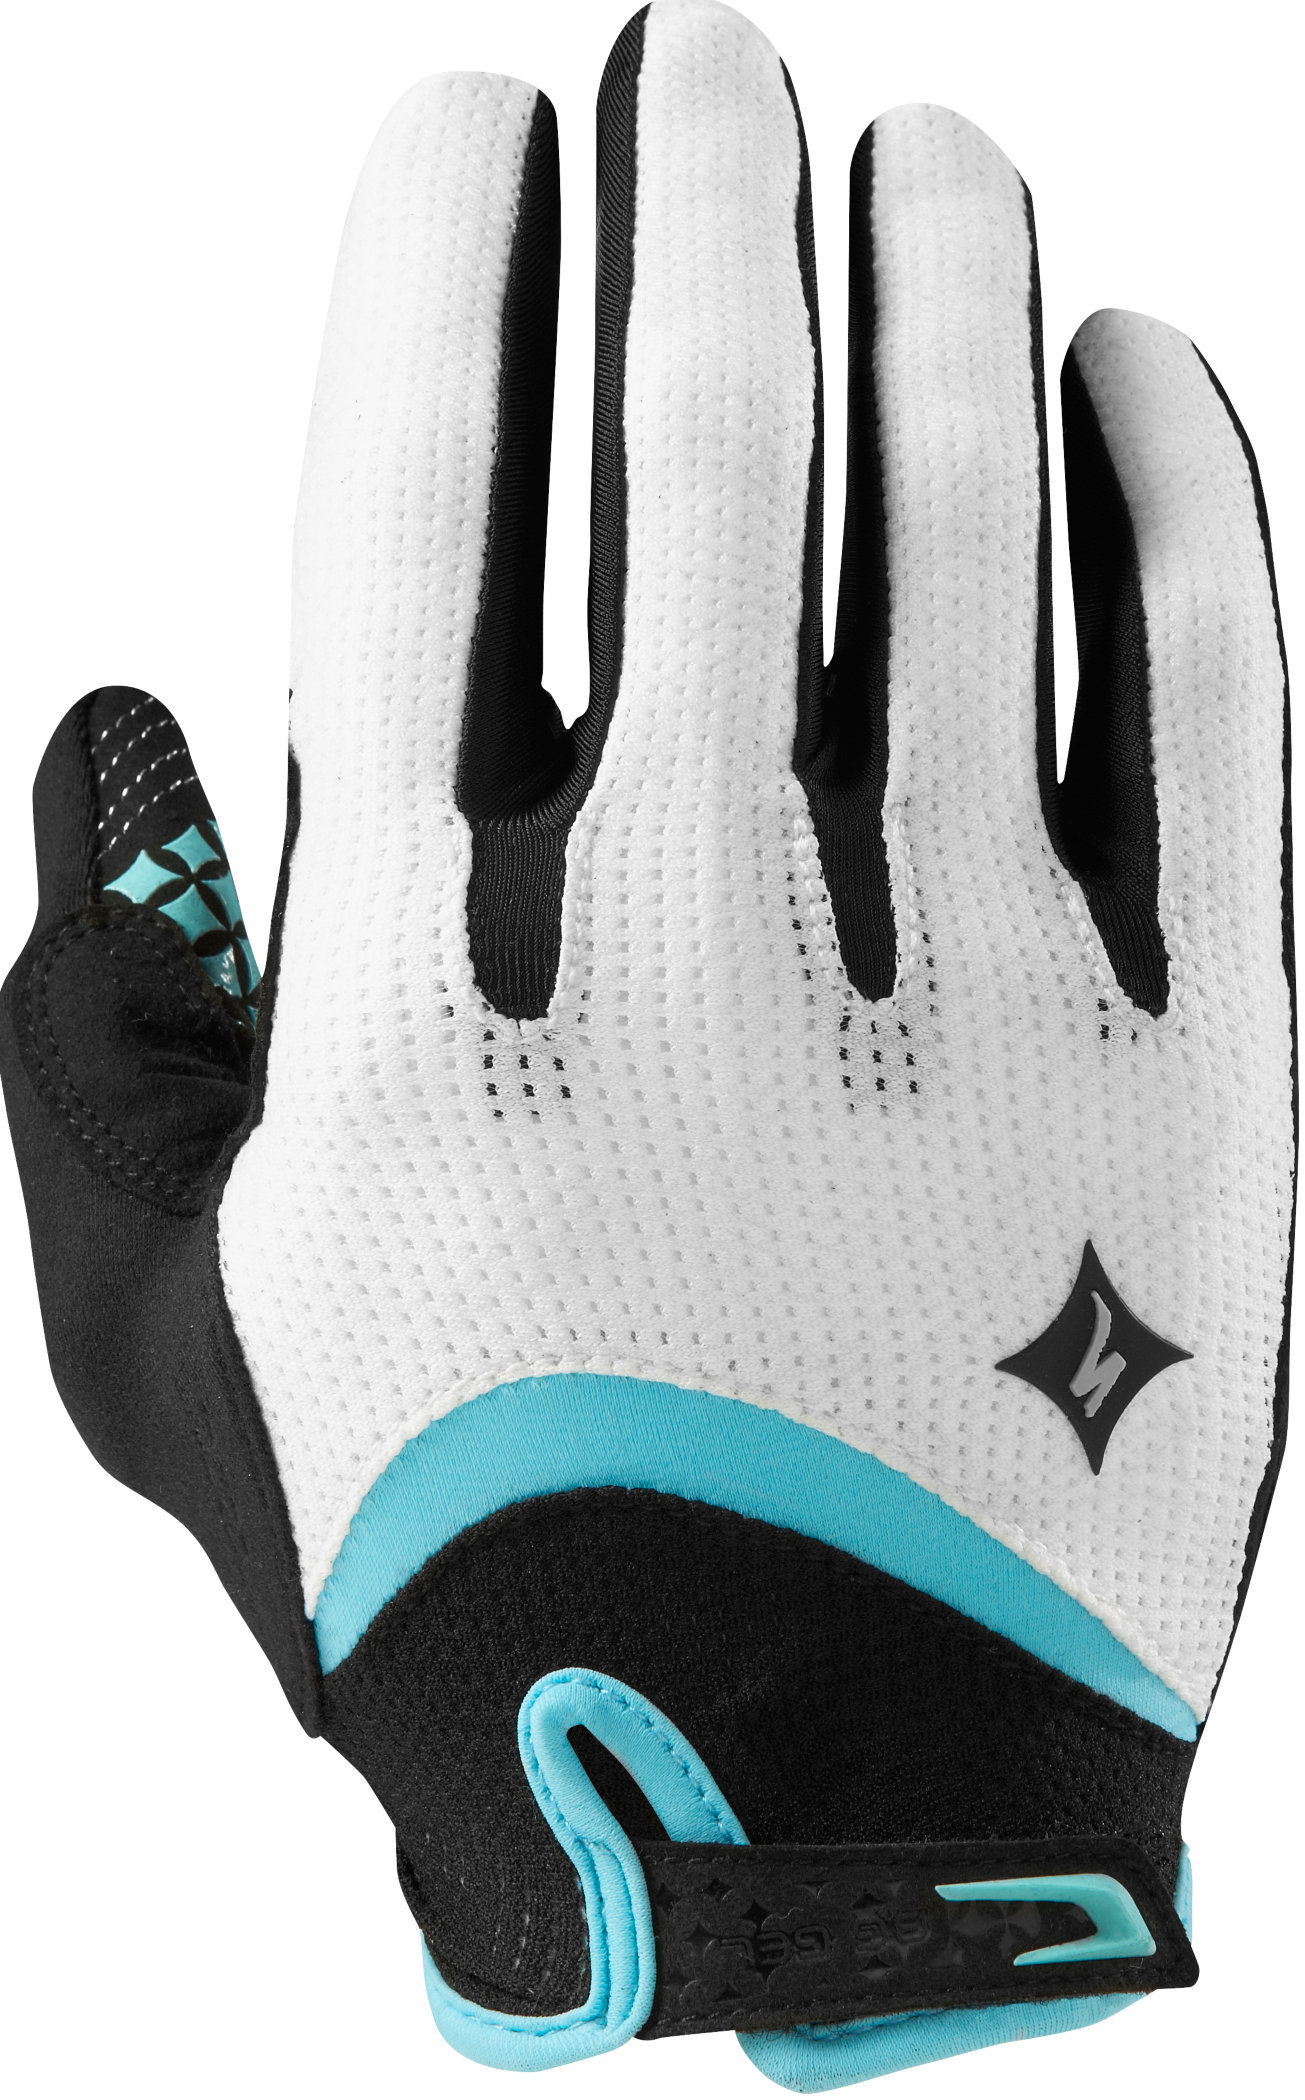 SPECIALIZED BG GEL GLOVE LF WMN WHT/LT TEAL S - Bikedreams & Dustbikes